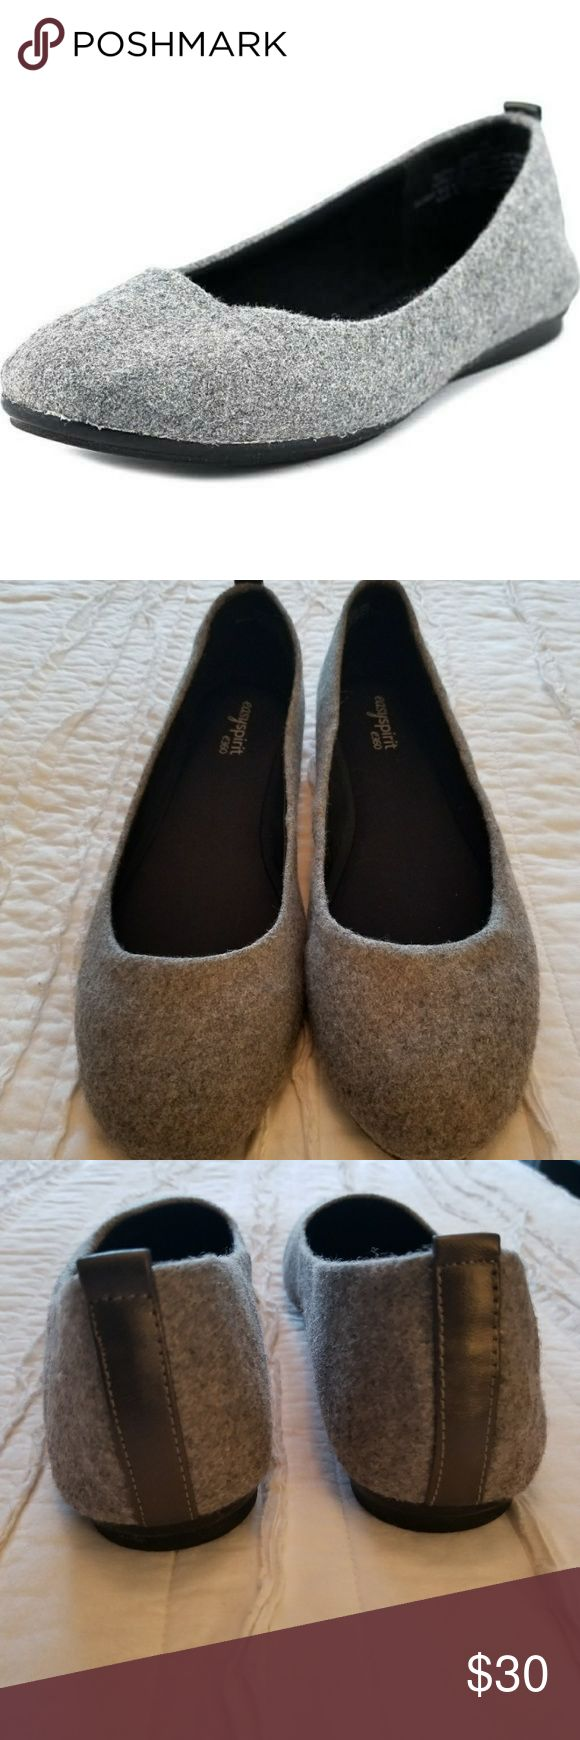 Easy Spirit e360 Flats Excellent used condition.  Never worn outside.  Gray felt like upper.  Size 11 medium. Easy Spirit Shoes Flats & Loafers